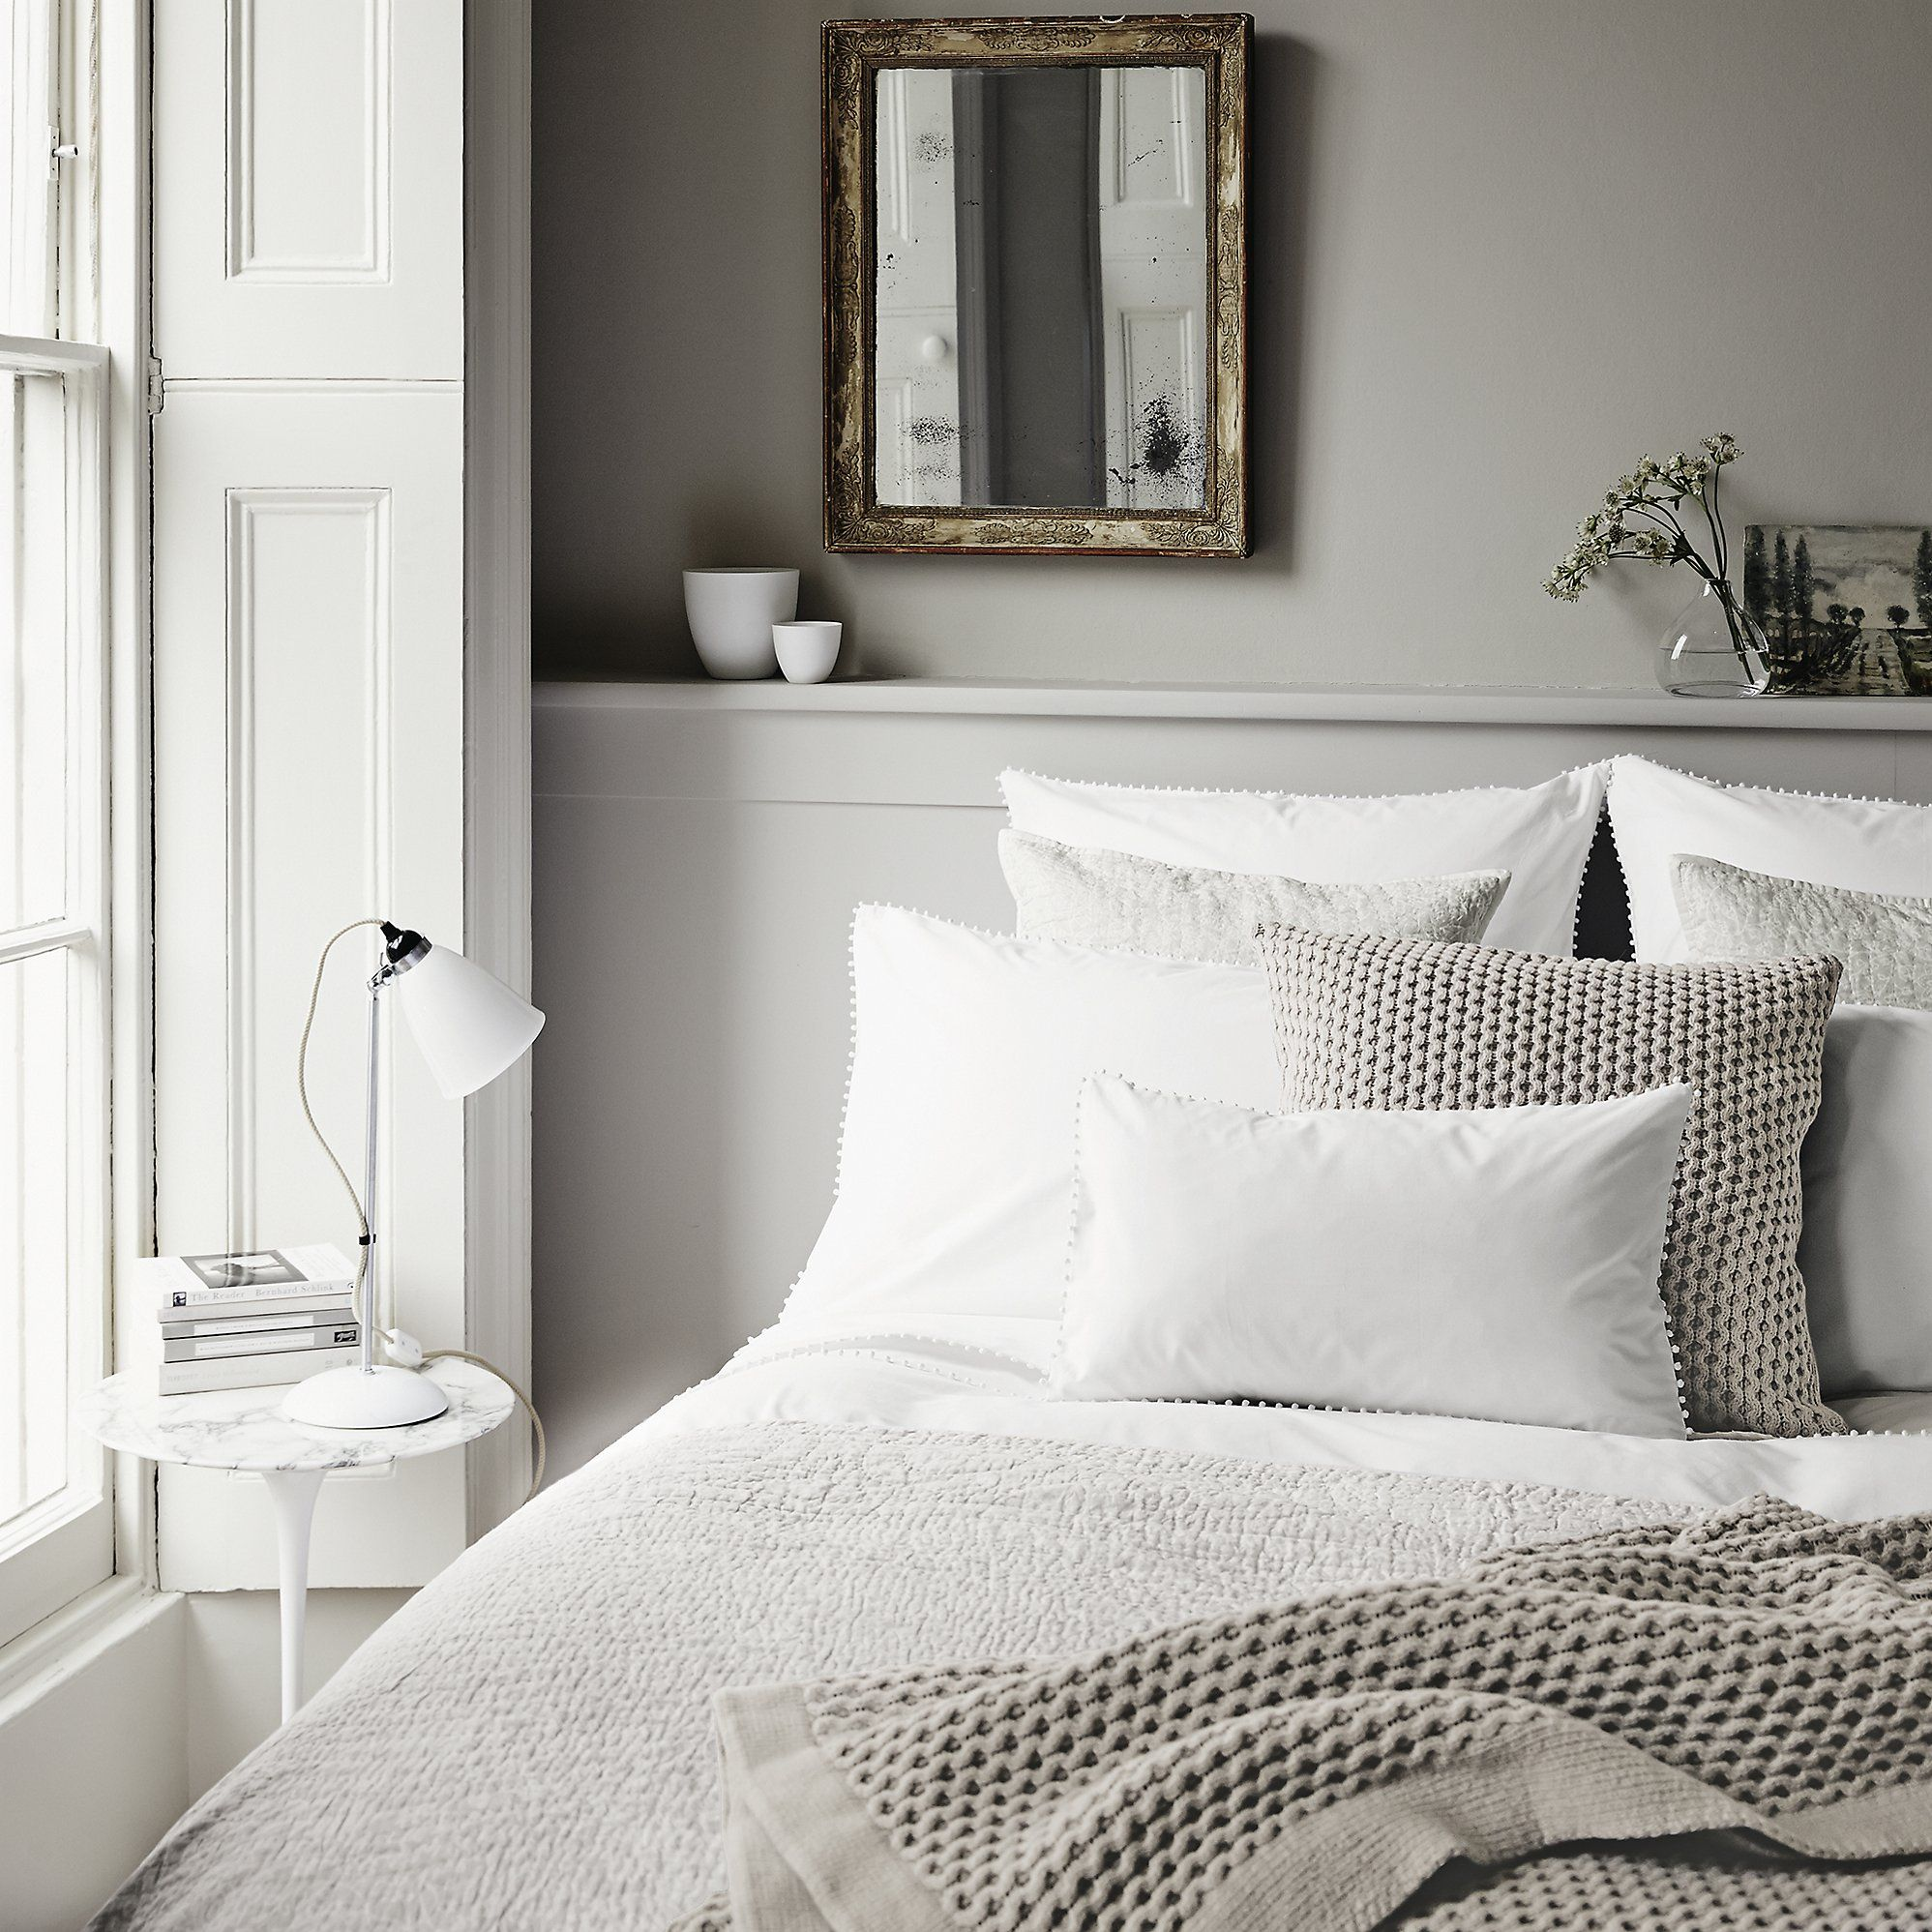 bedroom styling   Avignon Bed Linen Collection from The White Company. bedroom styling   Avignon Bed Linen Collection from The White